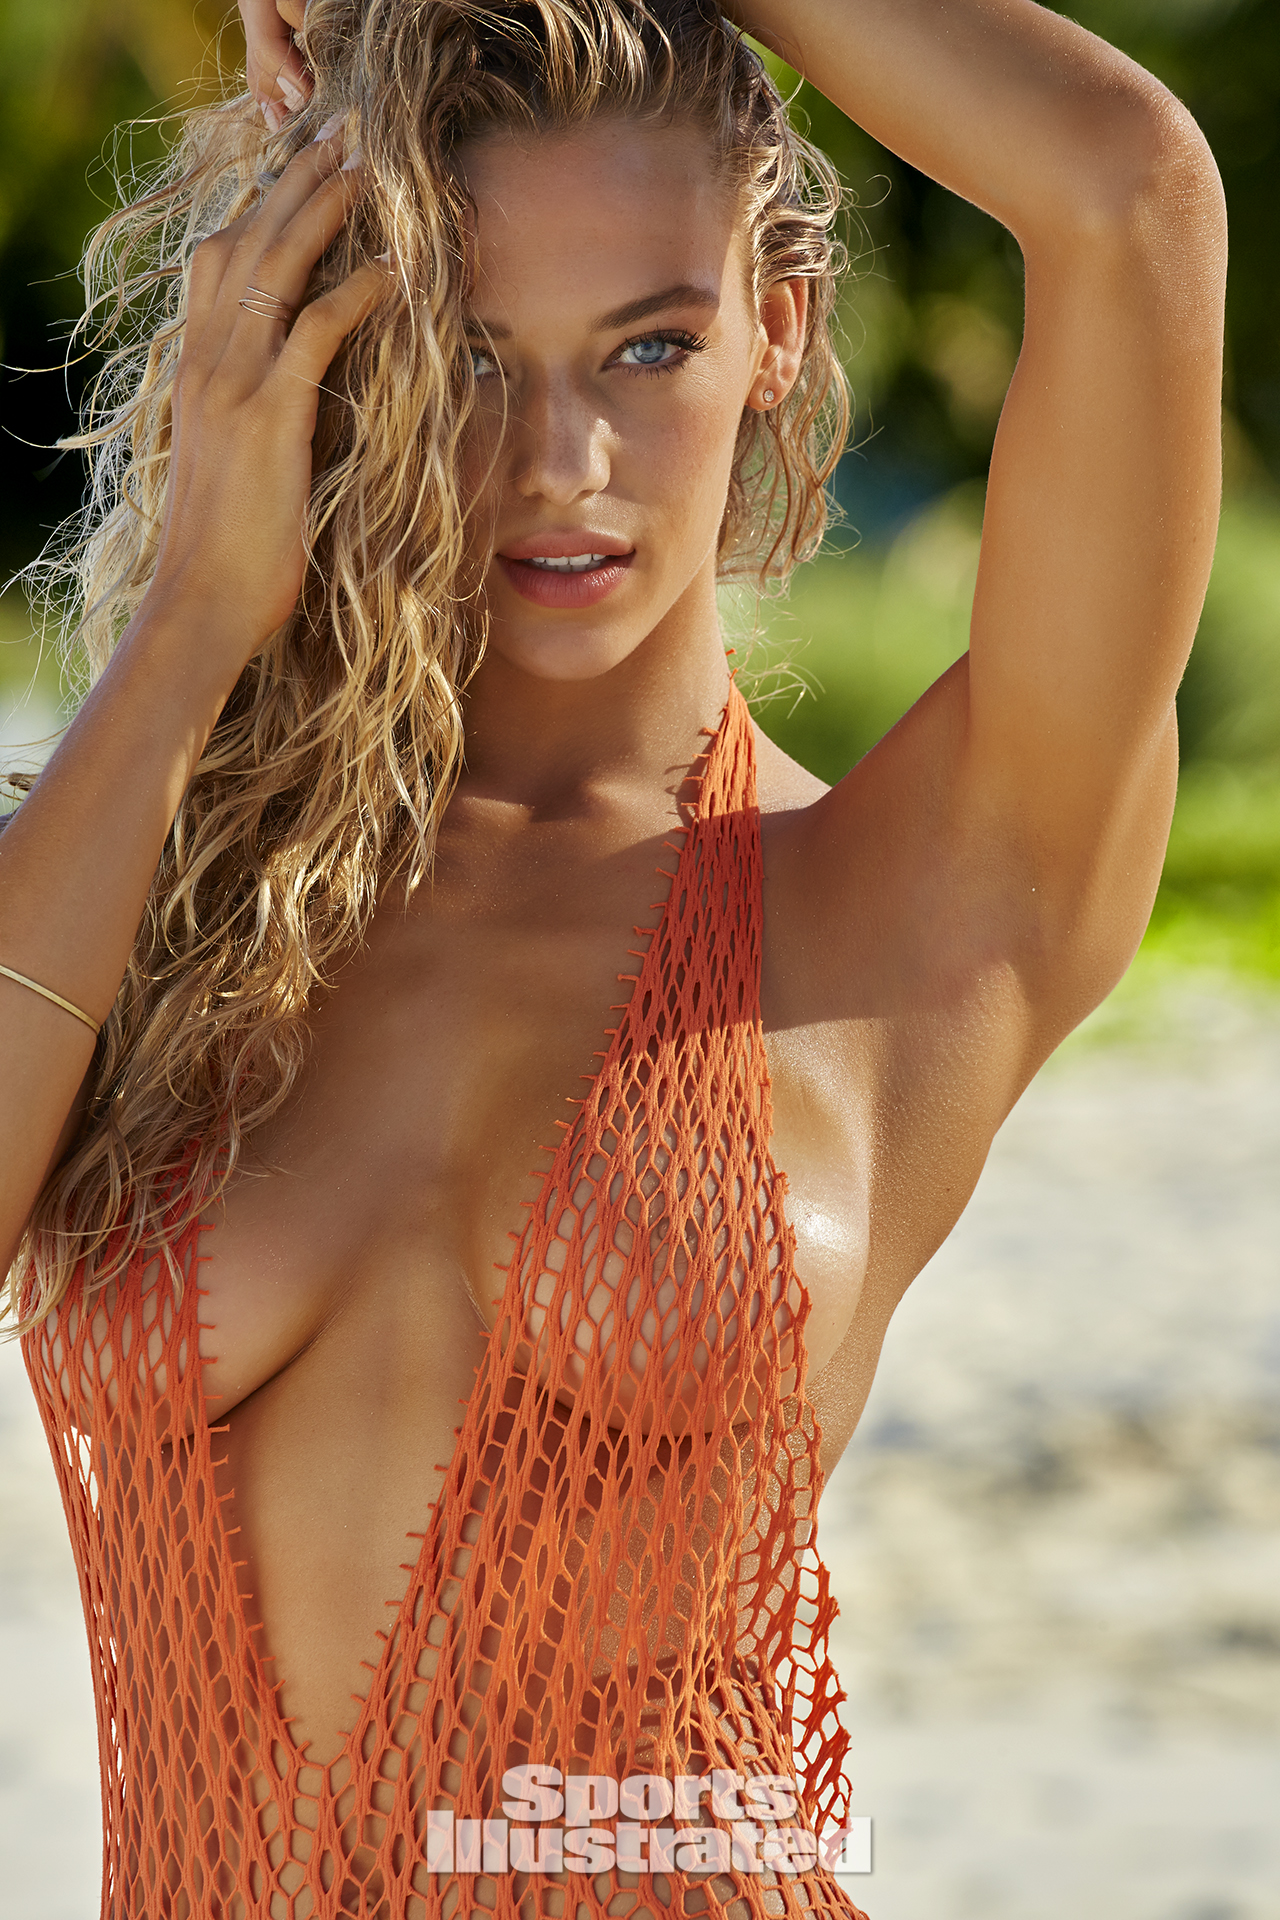 Hannah Ferguson was photographed by James Macari in Turks & Caicos. Swimsuit by Hayhay Couture By Hayley Kaysing.